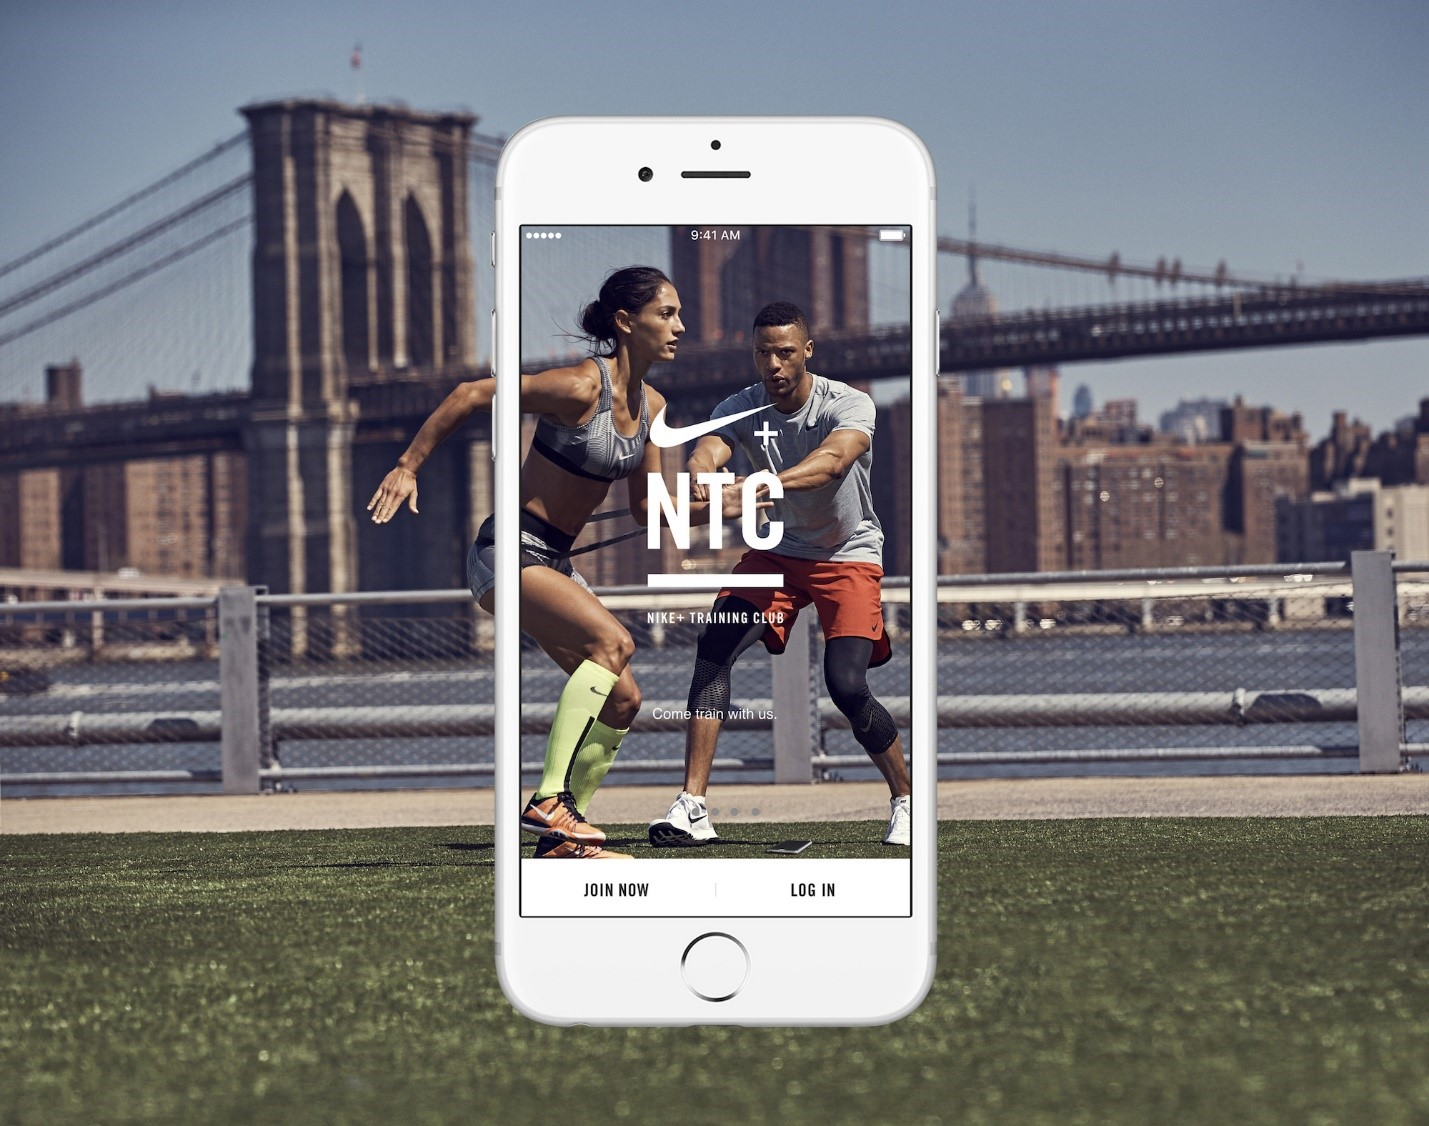 make-fitness-affordable-and-accessible-to-anyone-with-a-smartphone